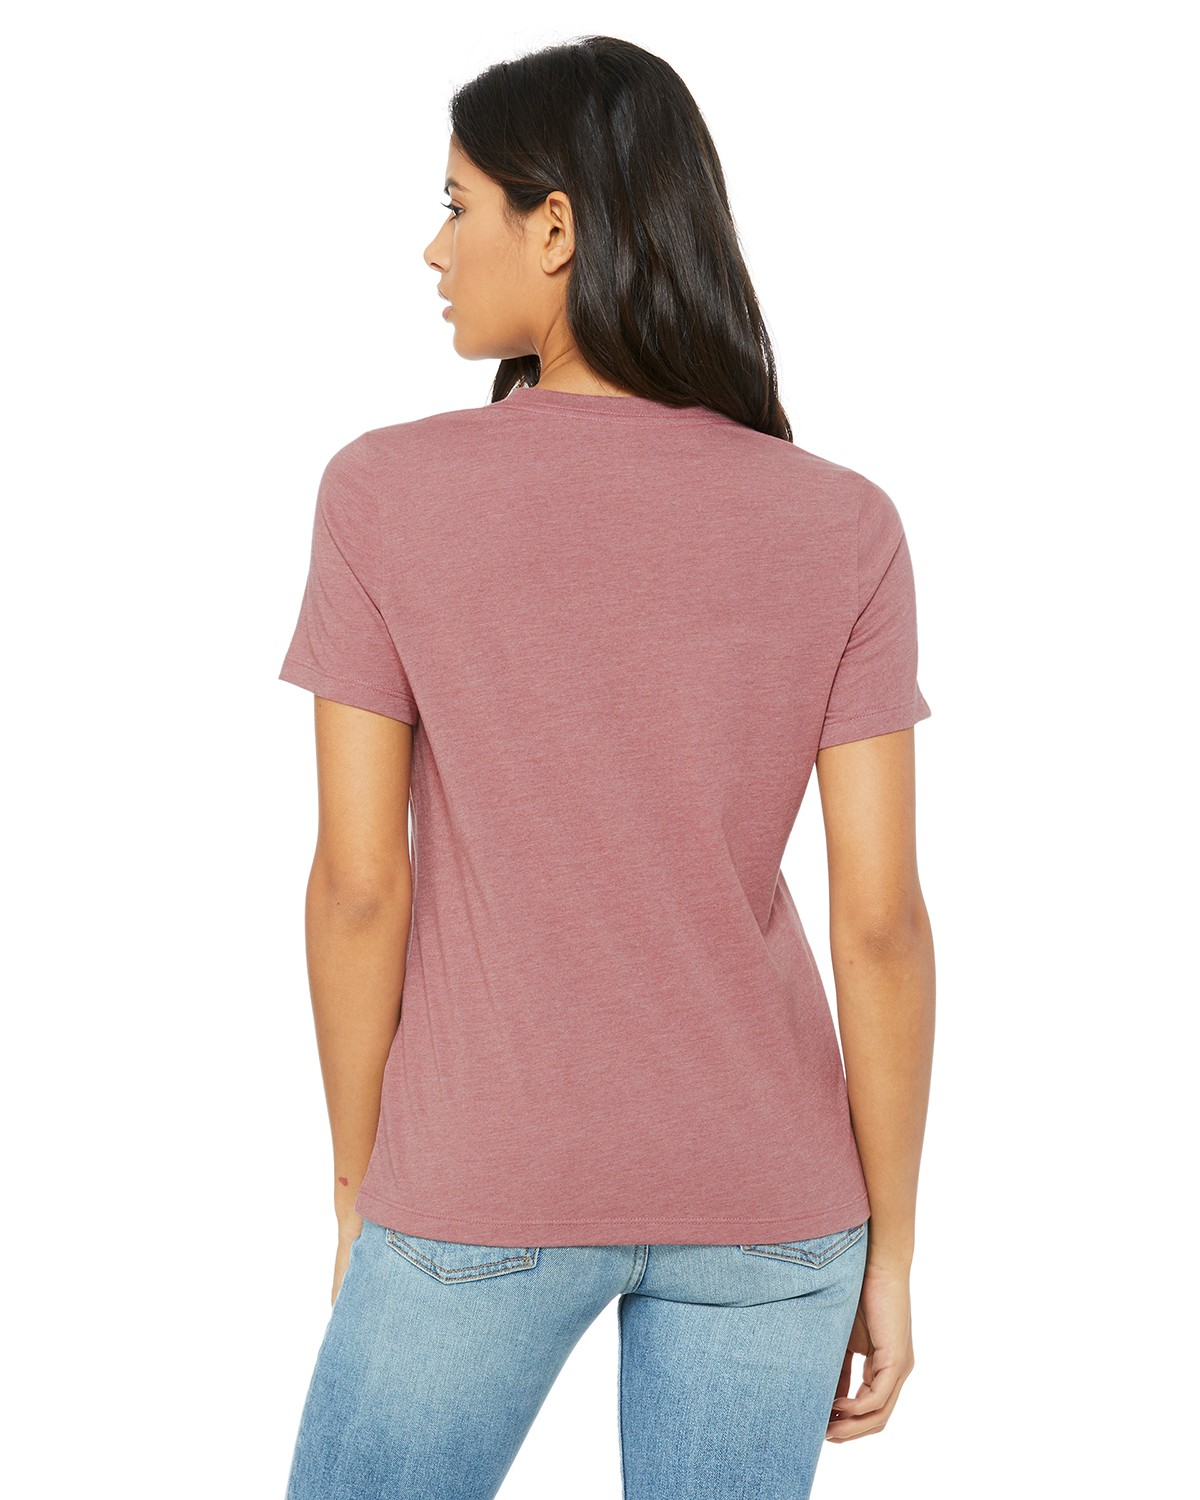 B6400 Bella + Canvas HEATHER MAUVE